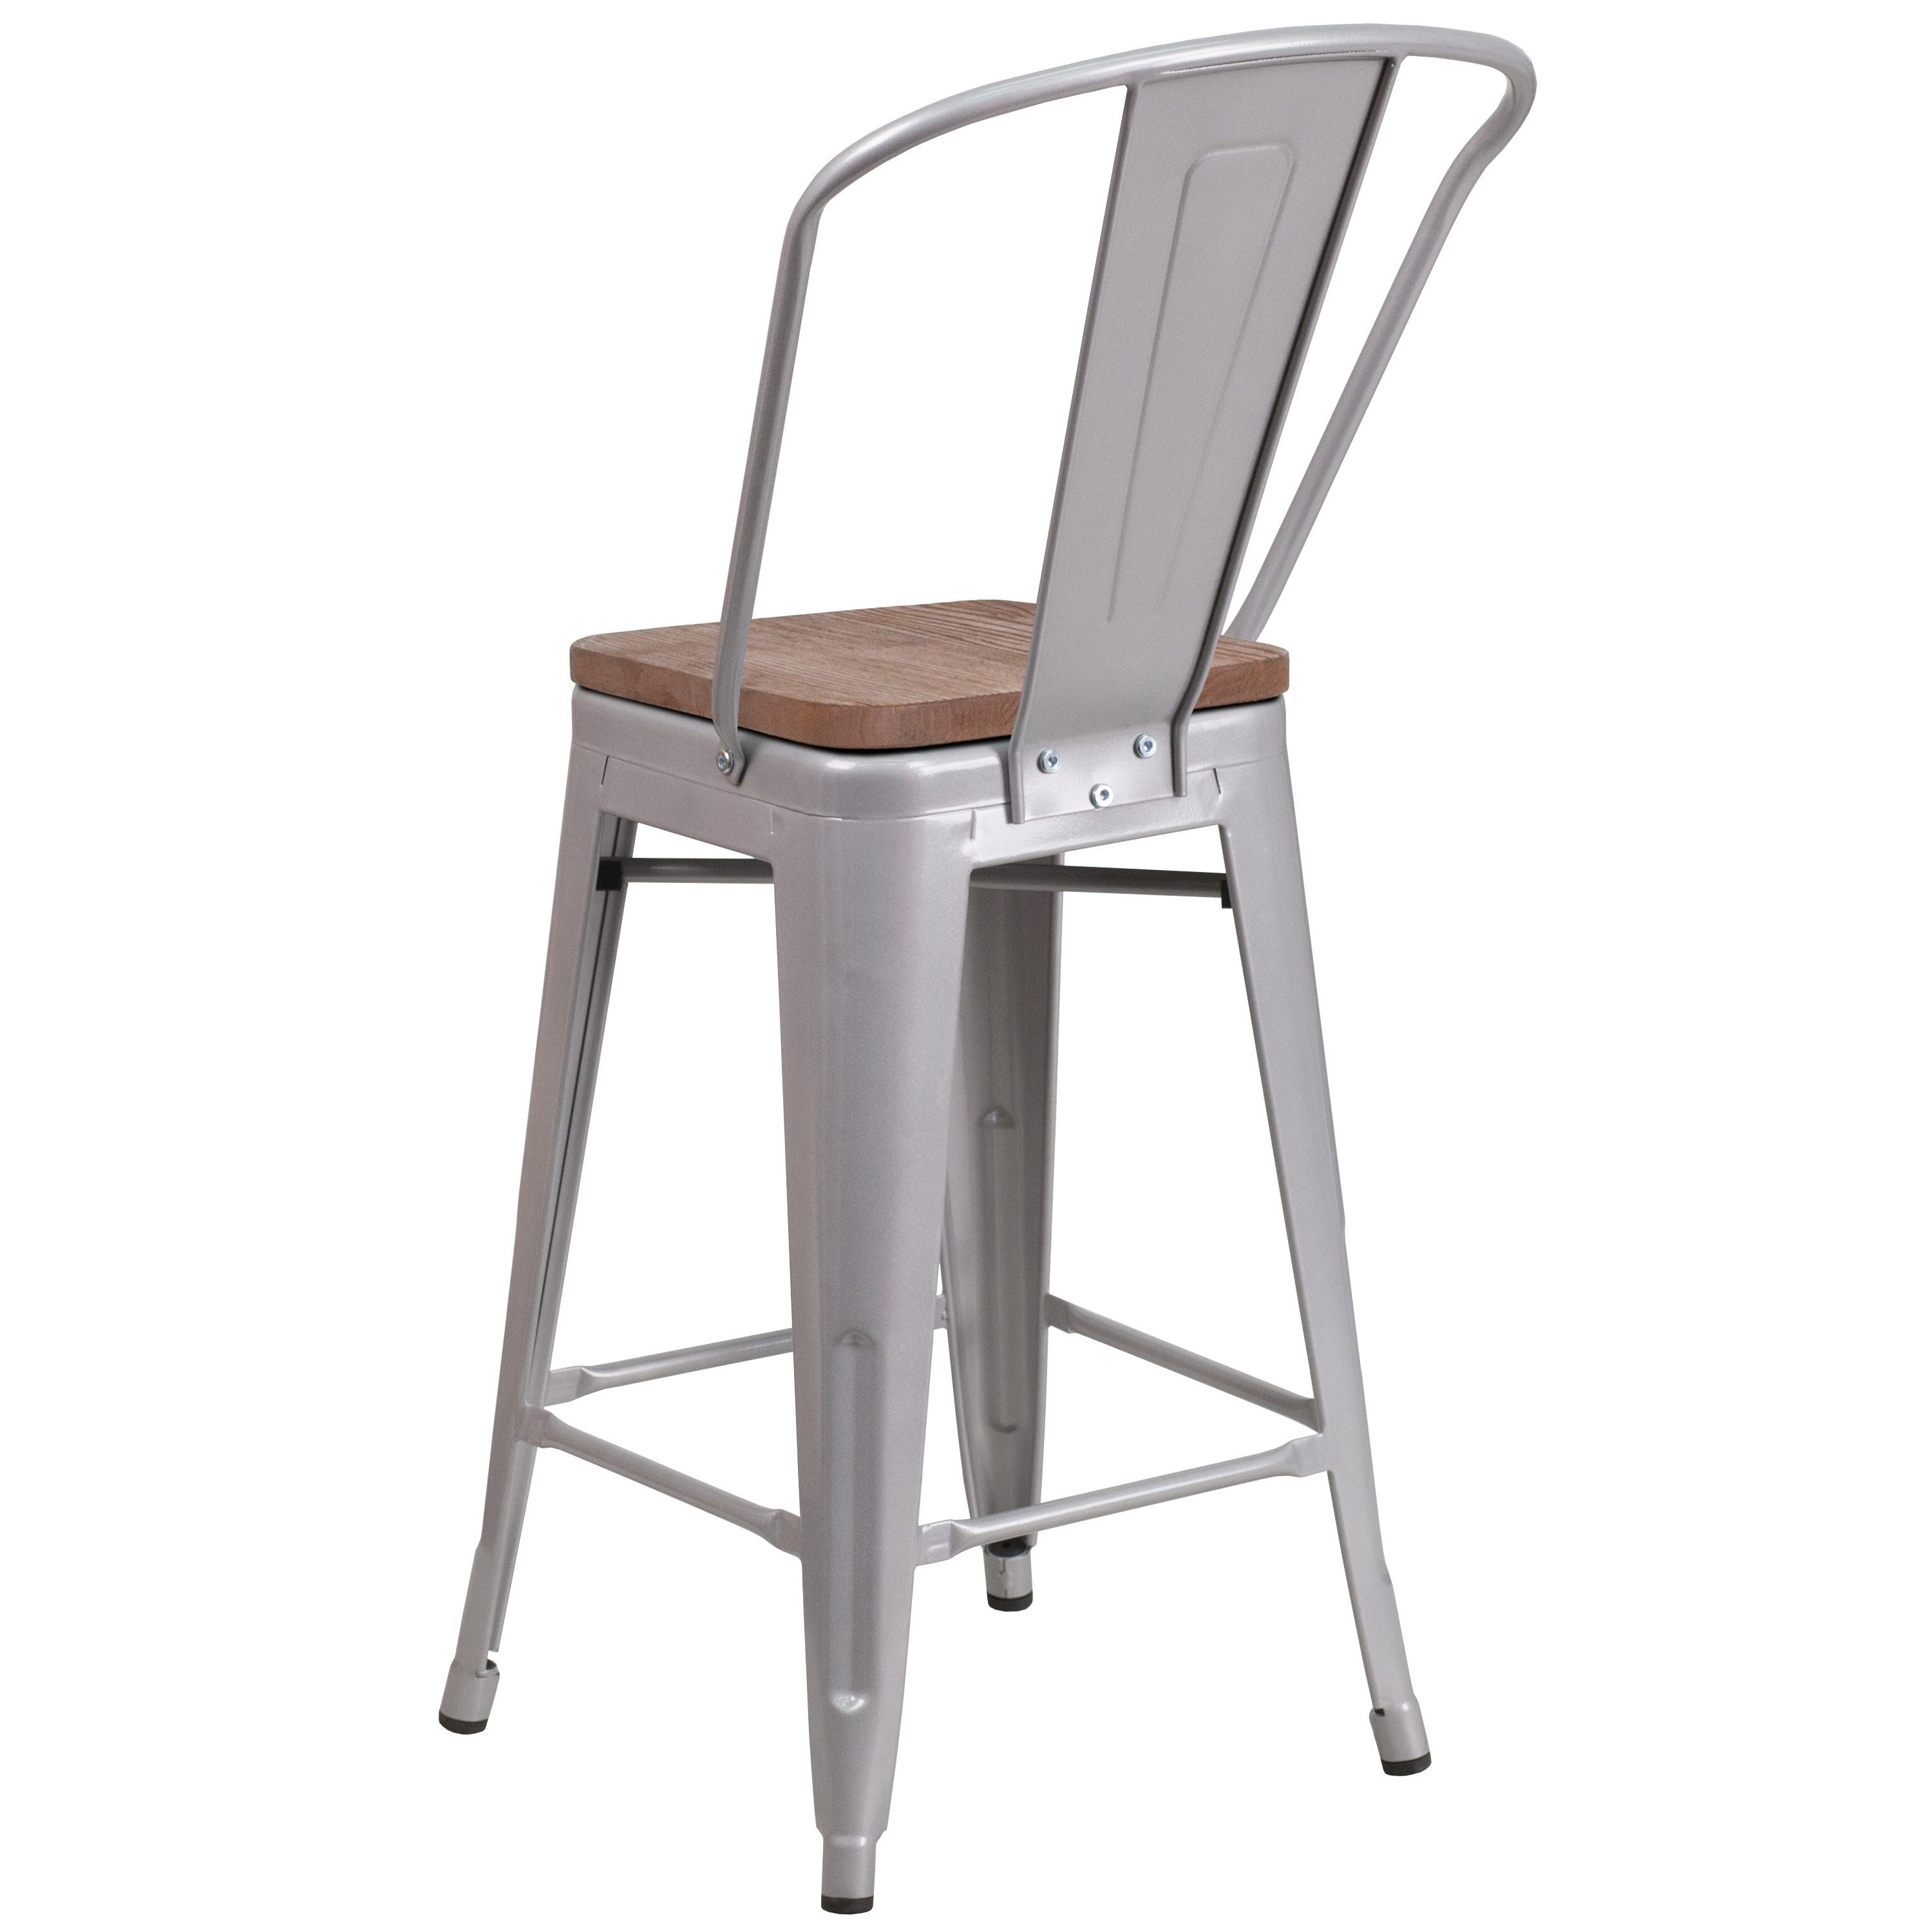 24 High Metal Counter Height Stool With Back And Wood Seat Ebay